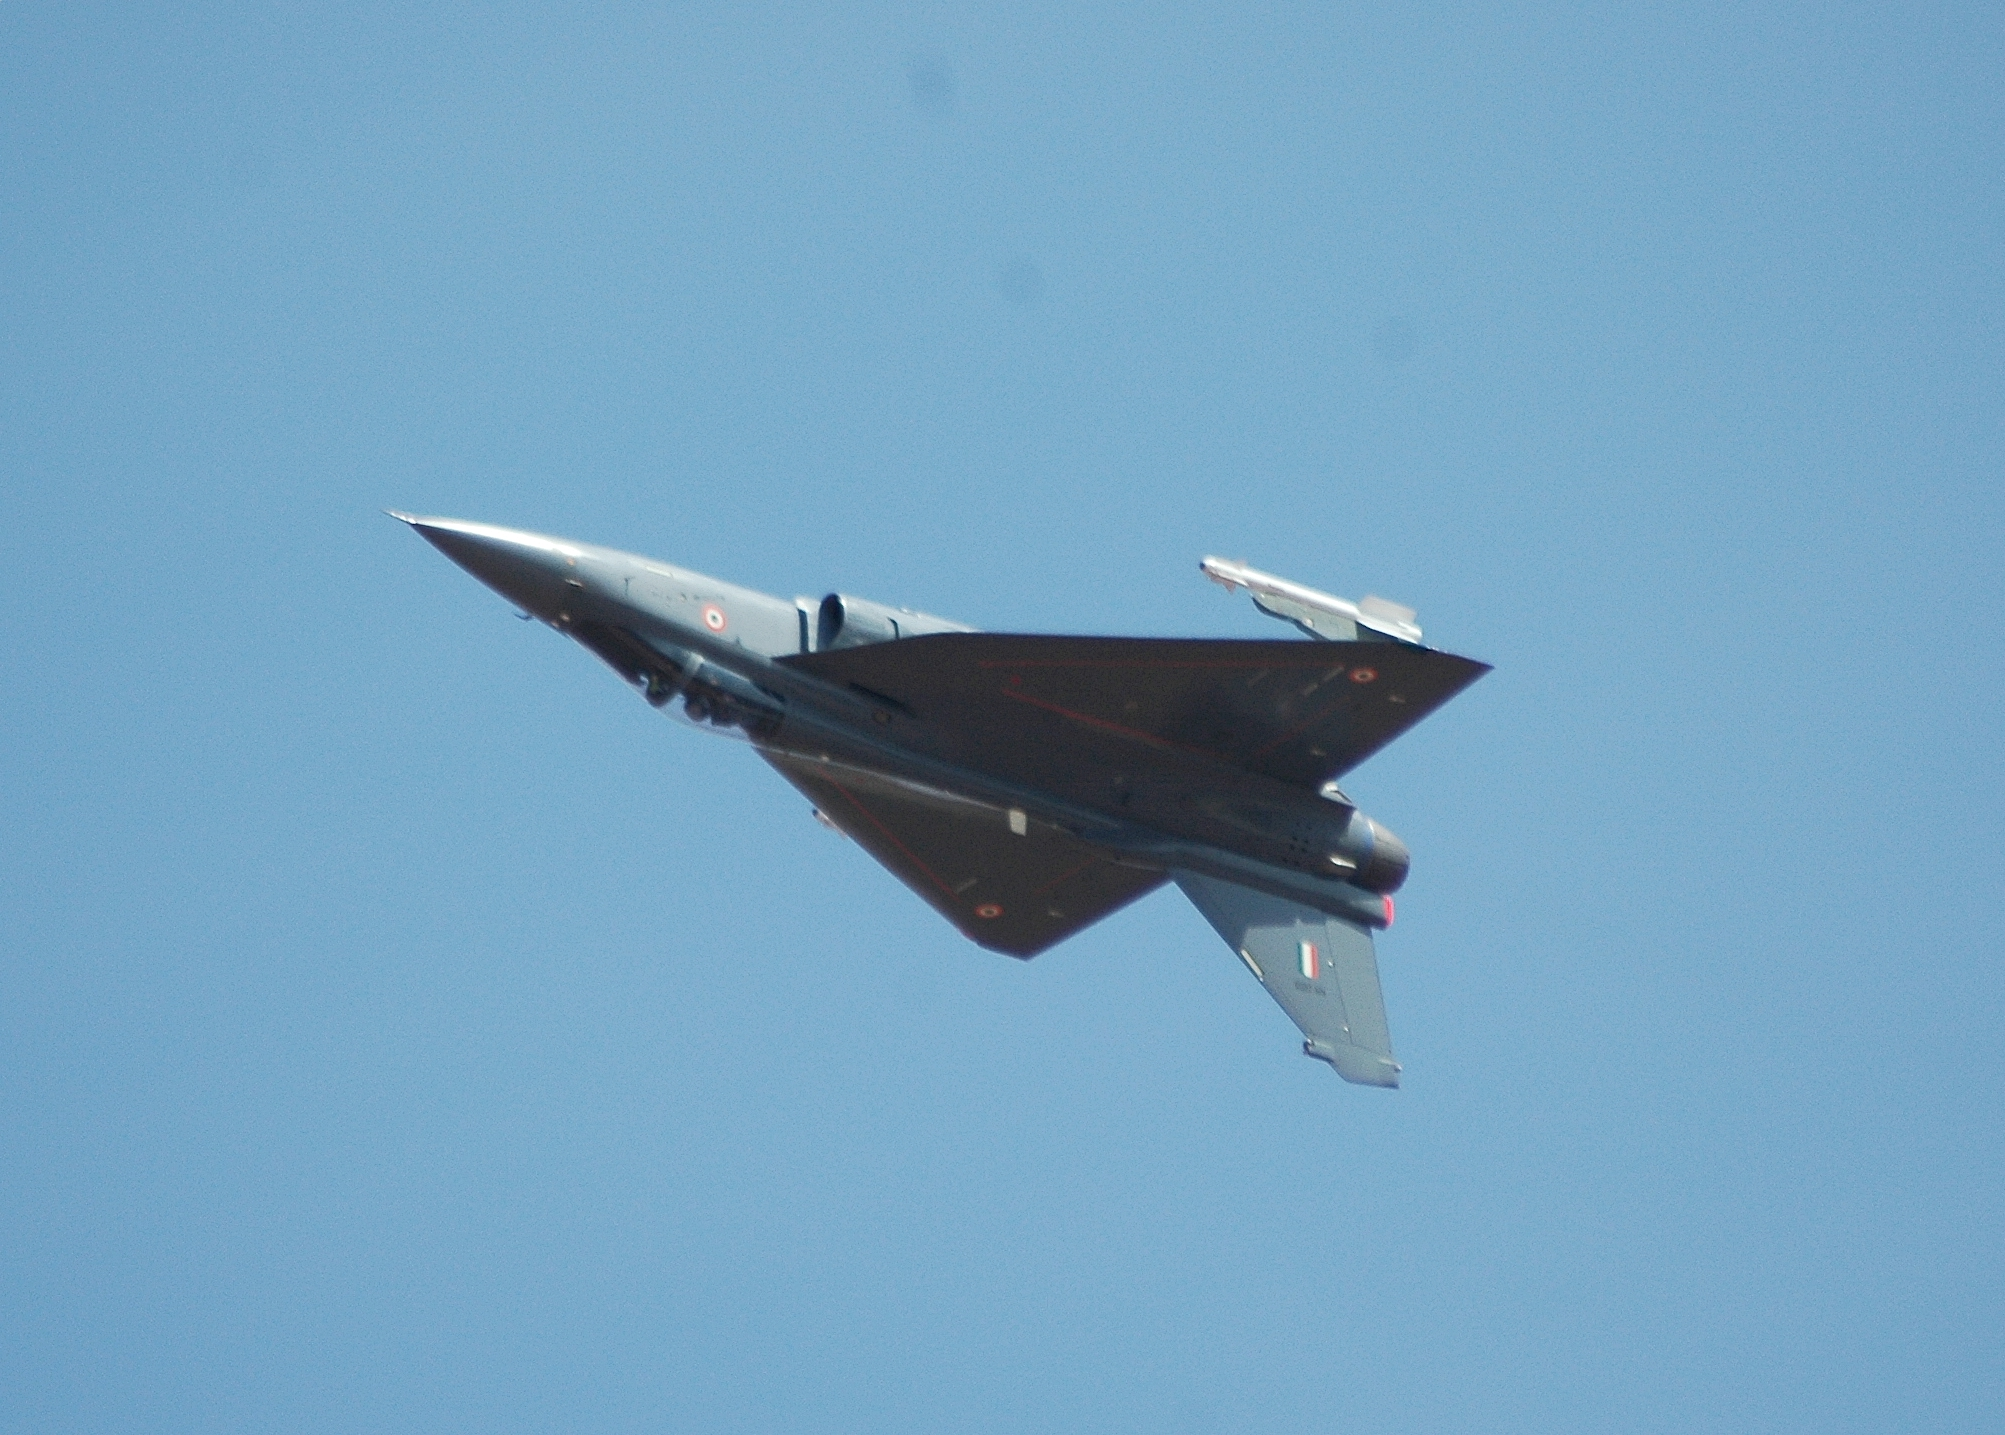 File:Tejas inverted pass.jpg - Wikipedia, the free encyclopedia